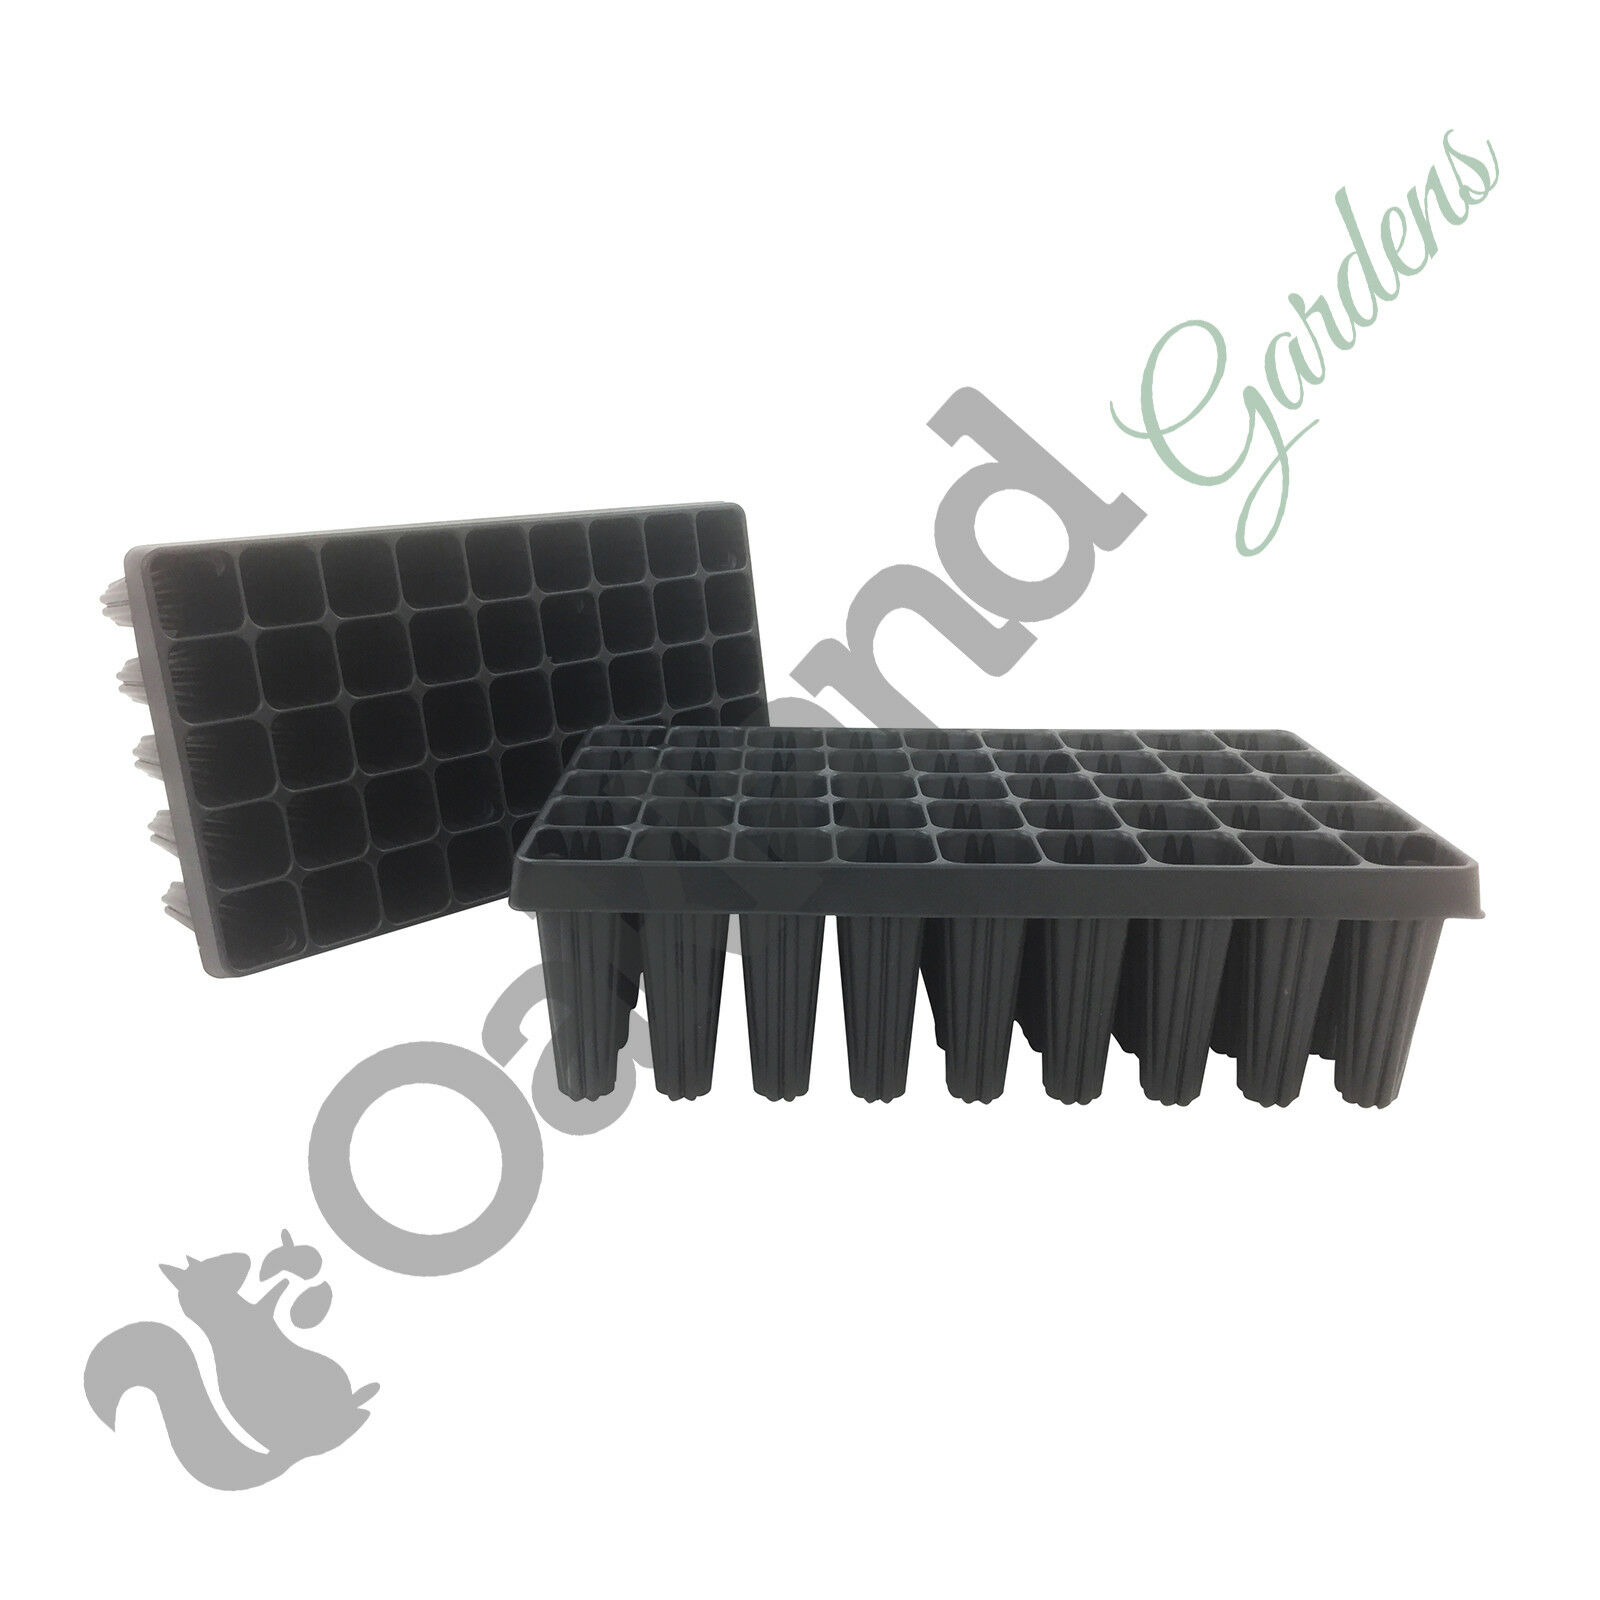 9 x 45 Cell Deep Rootrainers Plug Plant Seed Tray Root trainers Extra Large